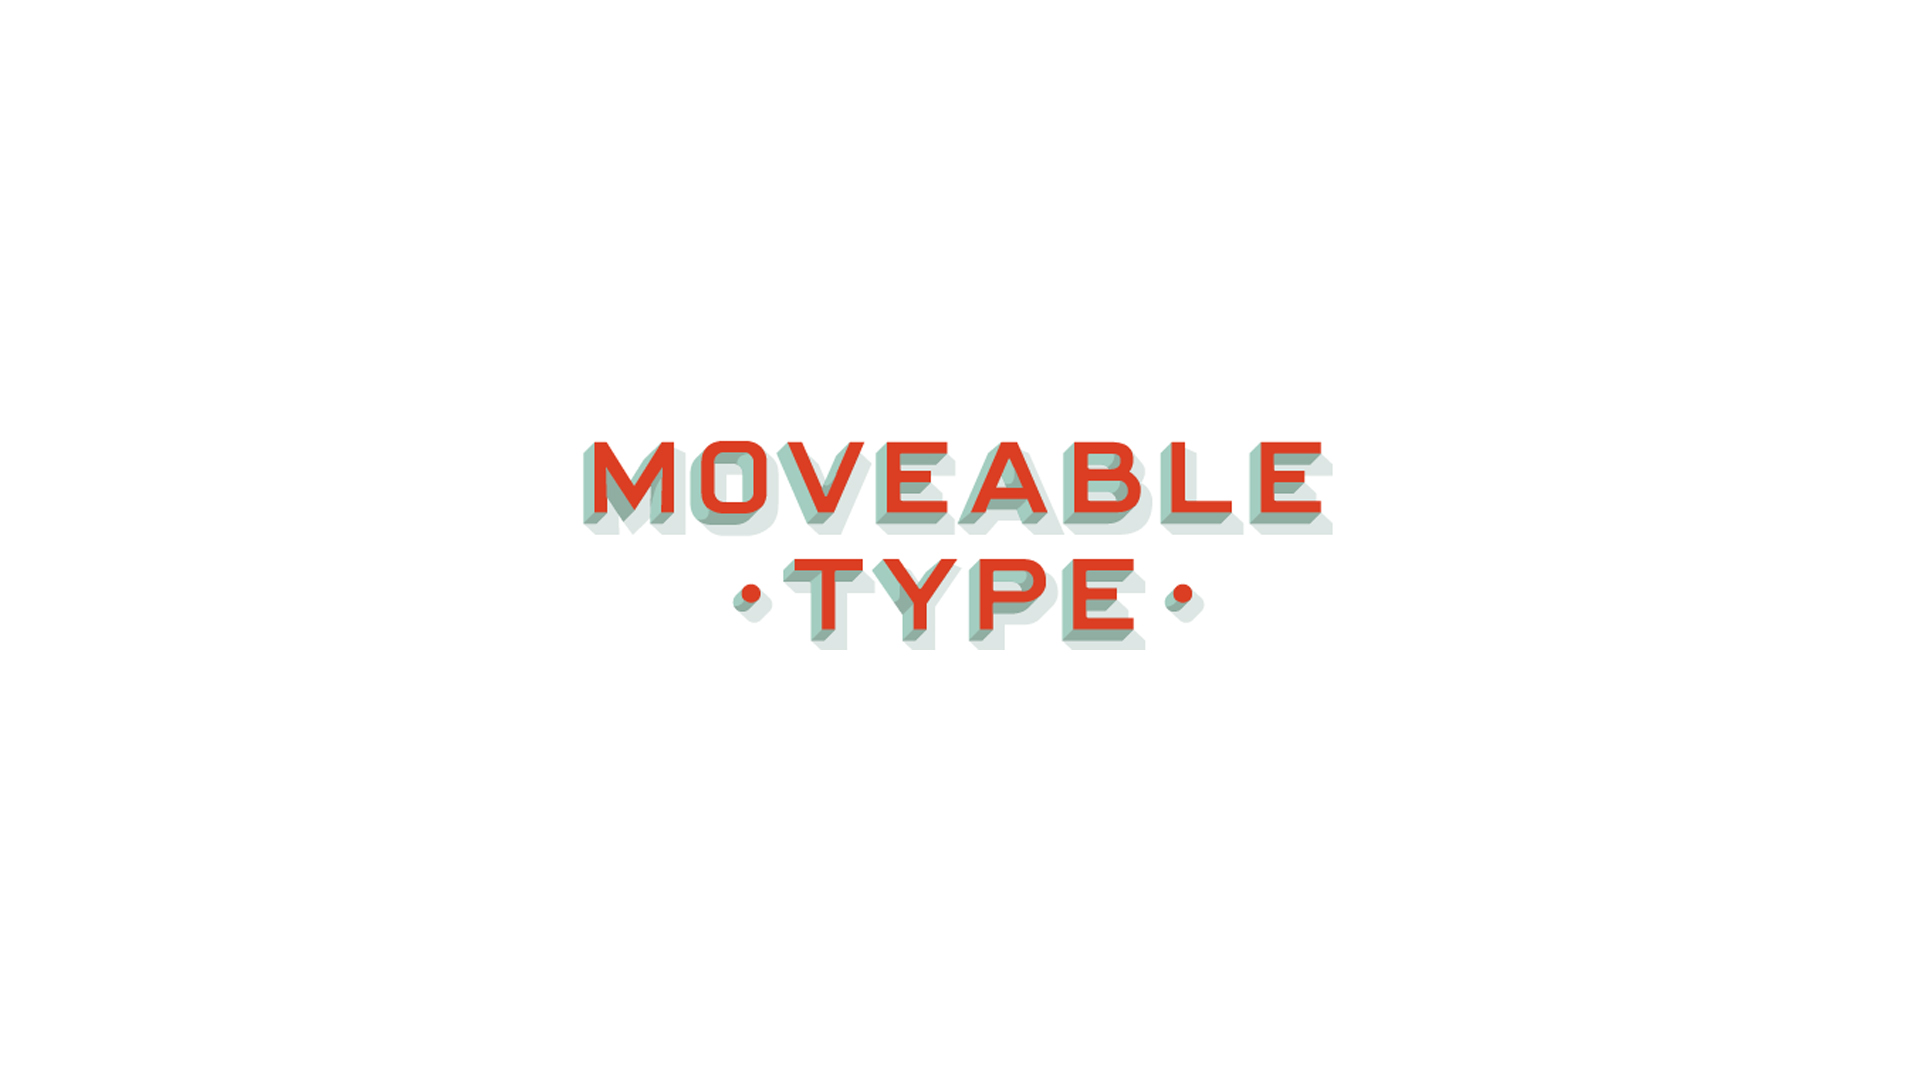 Moveable Type Truck, Kyle Durrie, letterpress, 23rd studios video